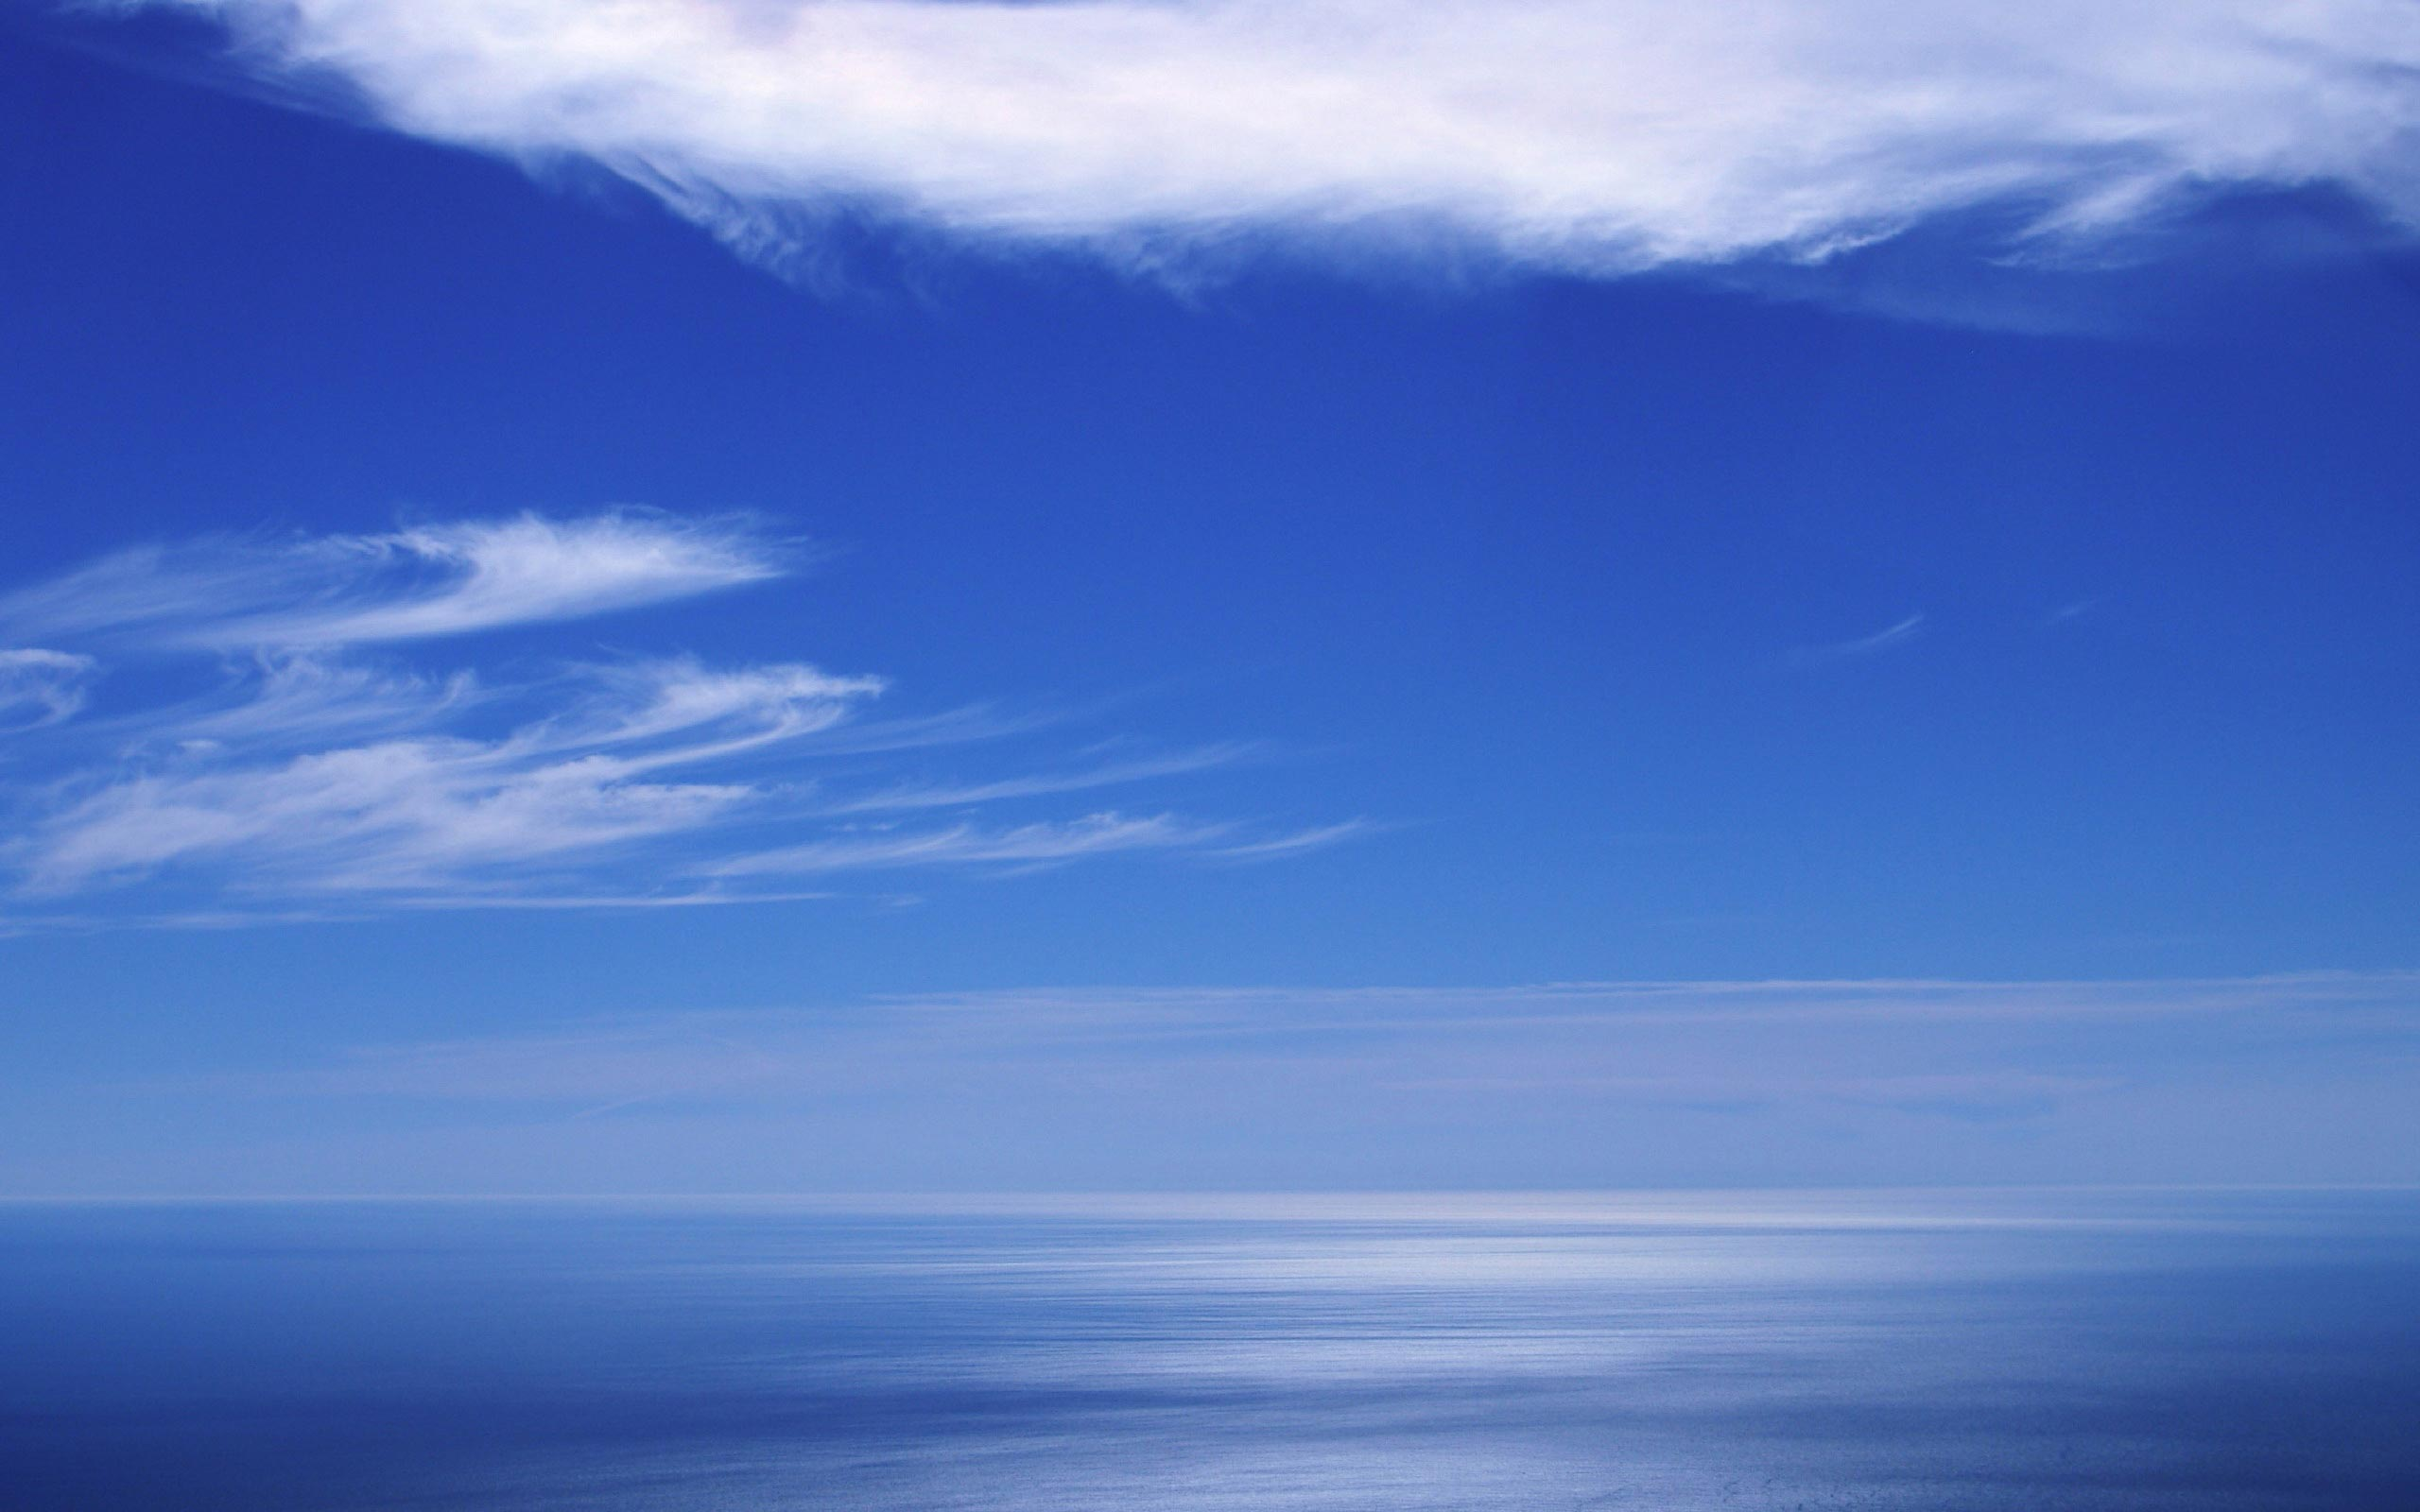 Blue-sea-horizon.jpg